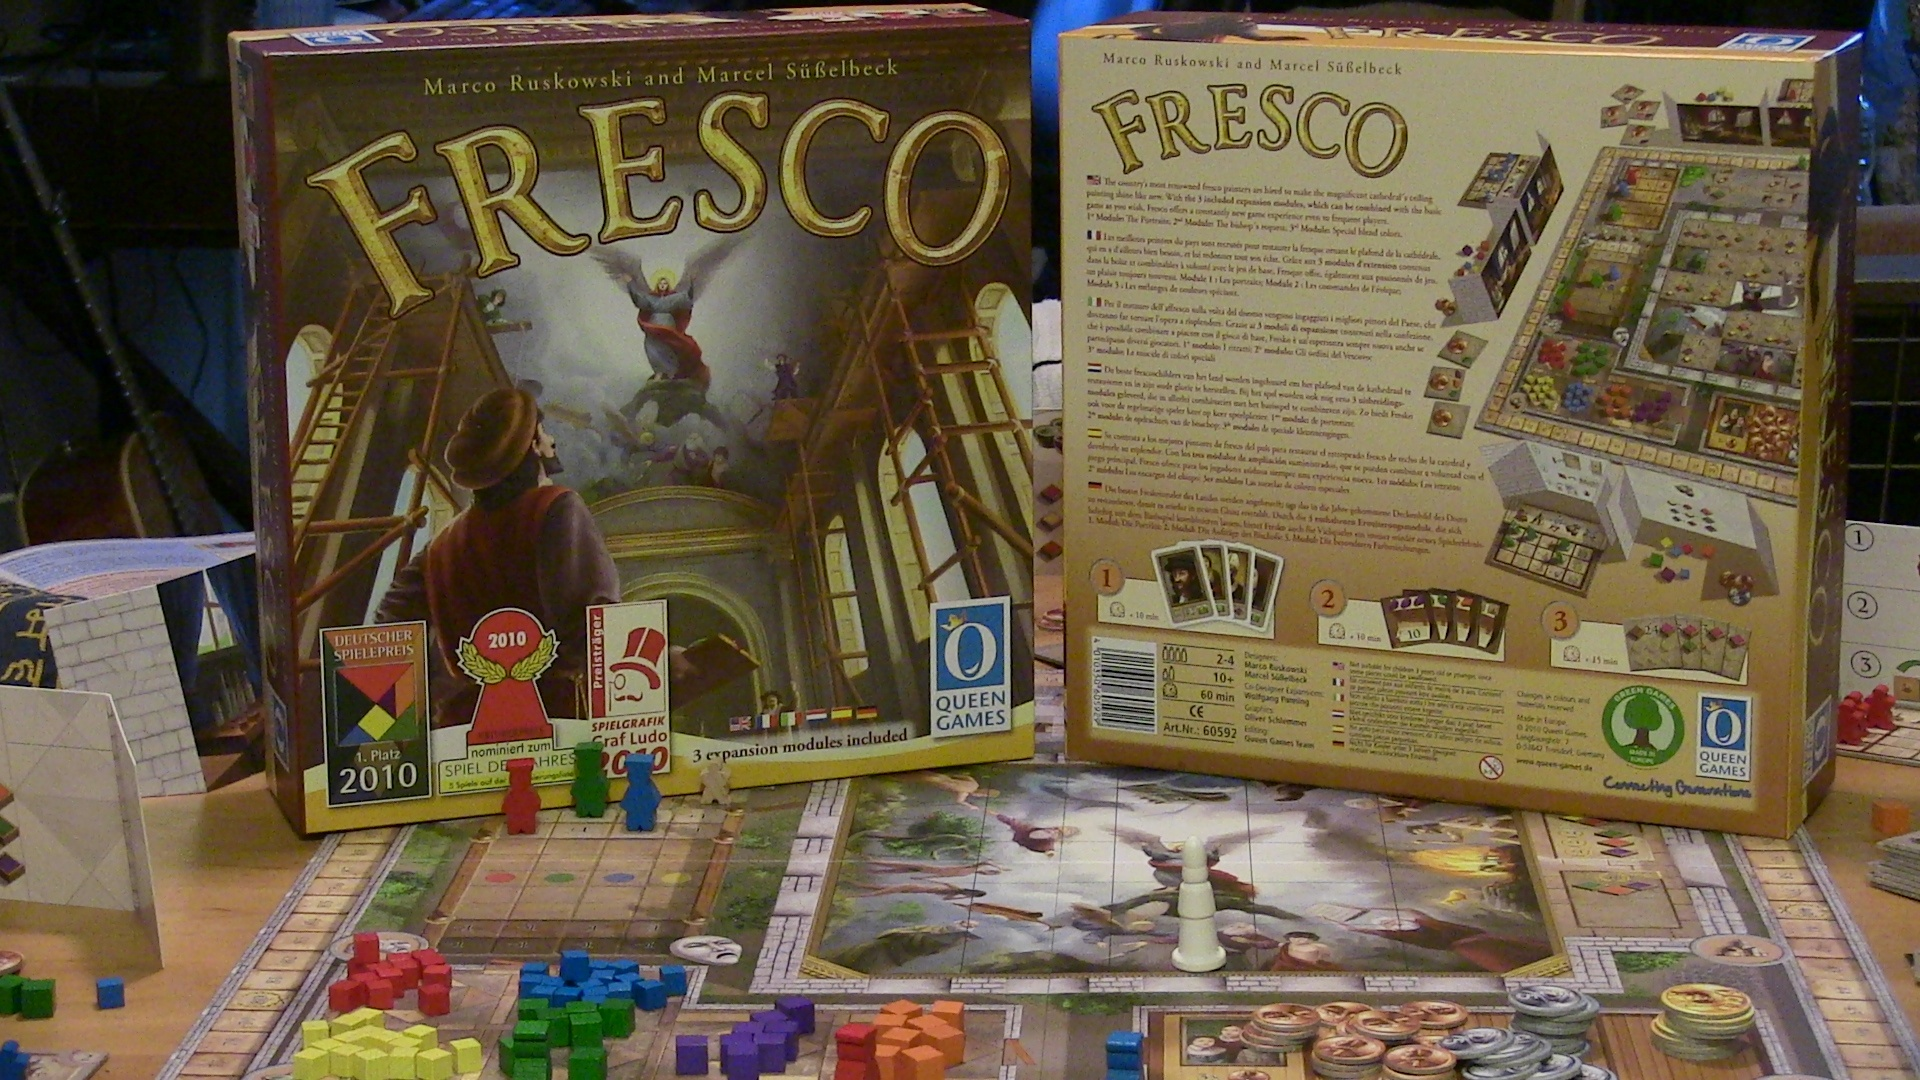 Fresco cover image